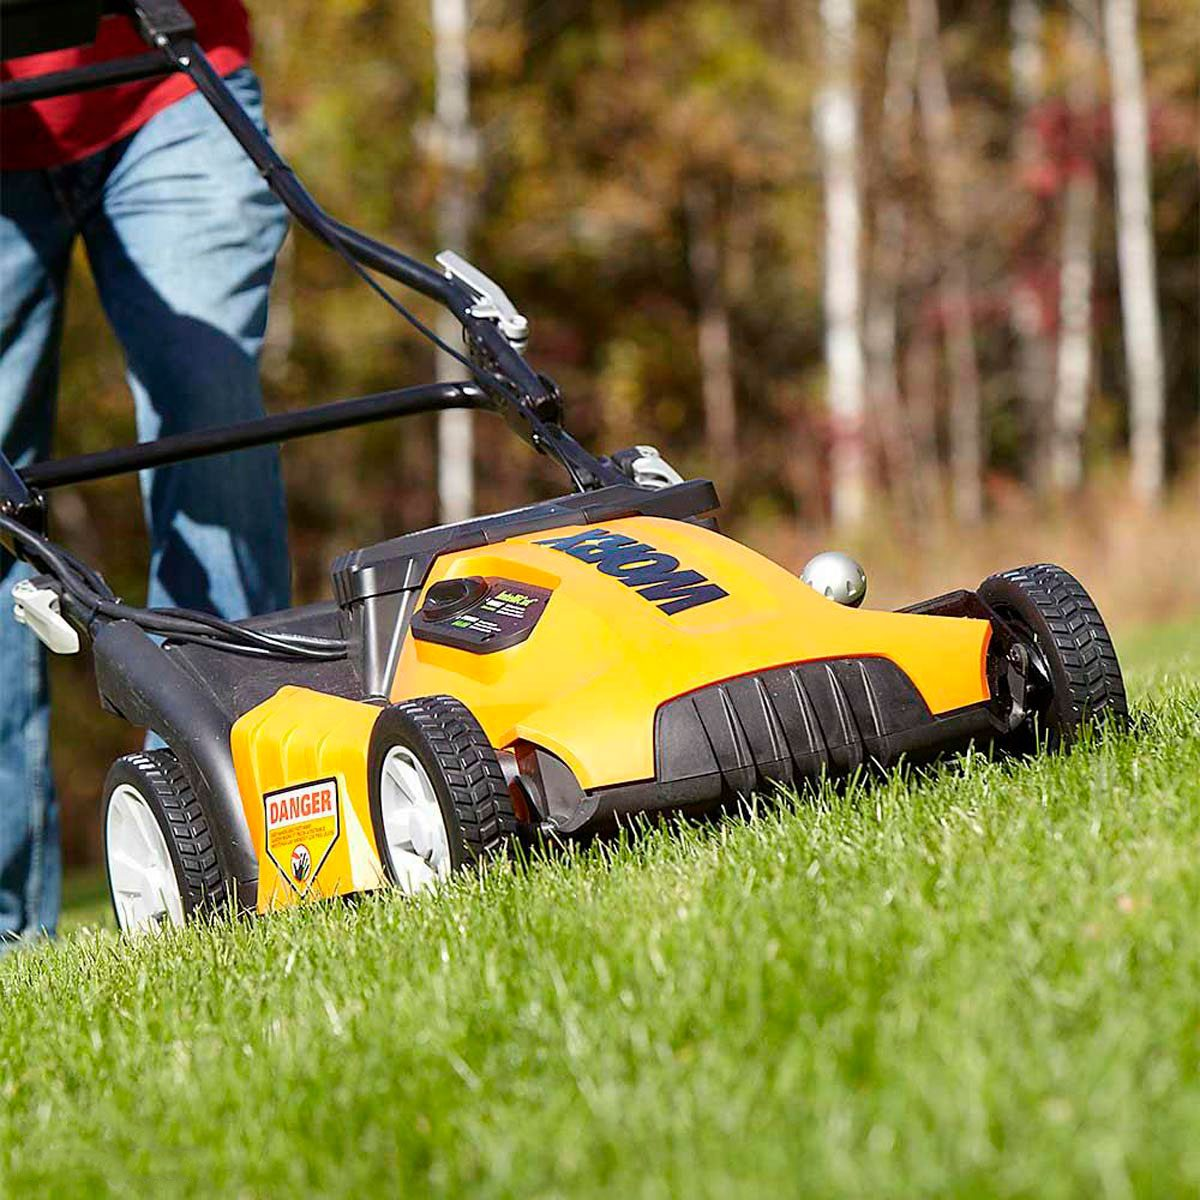 mowing the lawn. yellow push lawnmower.